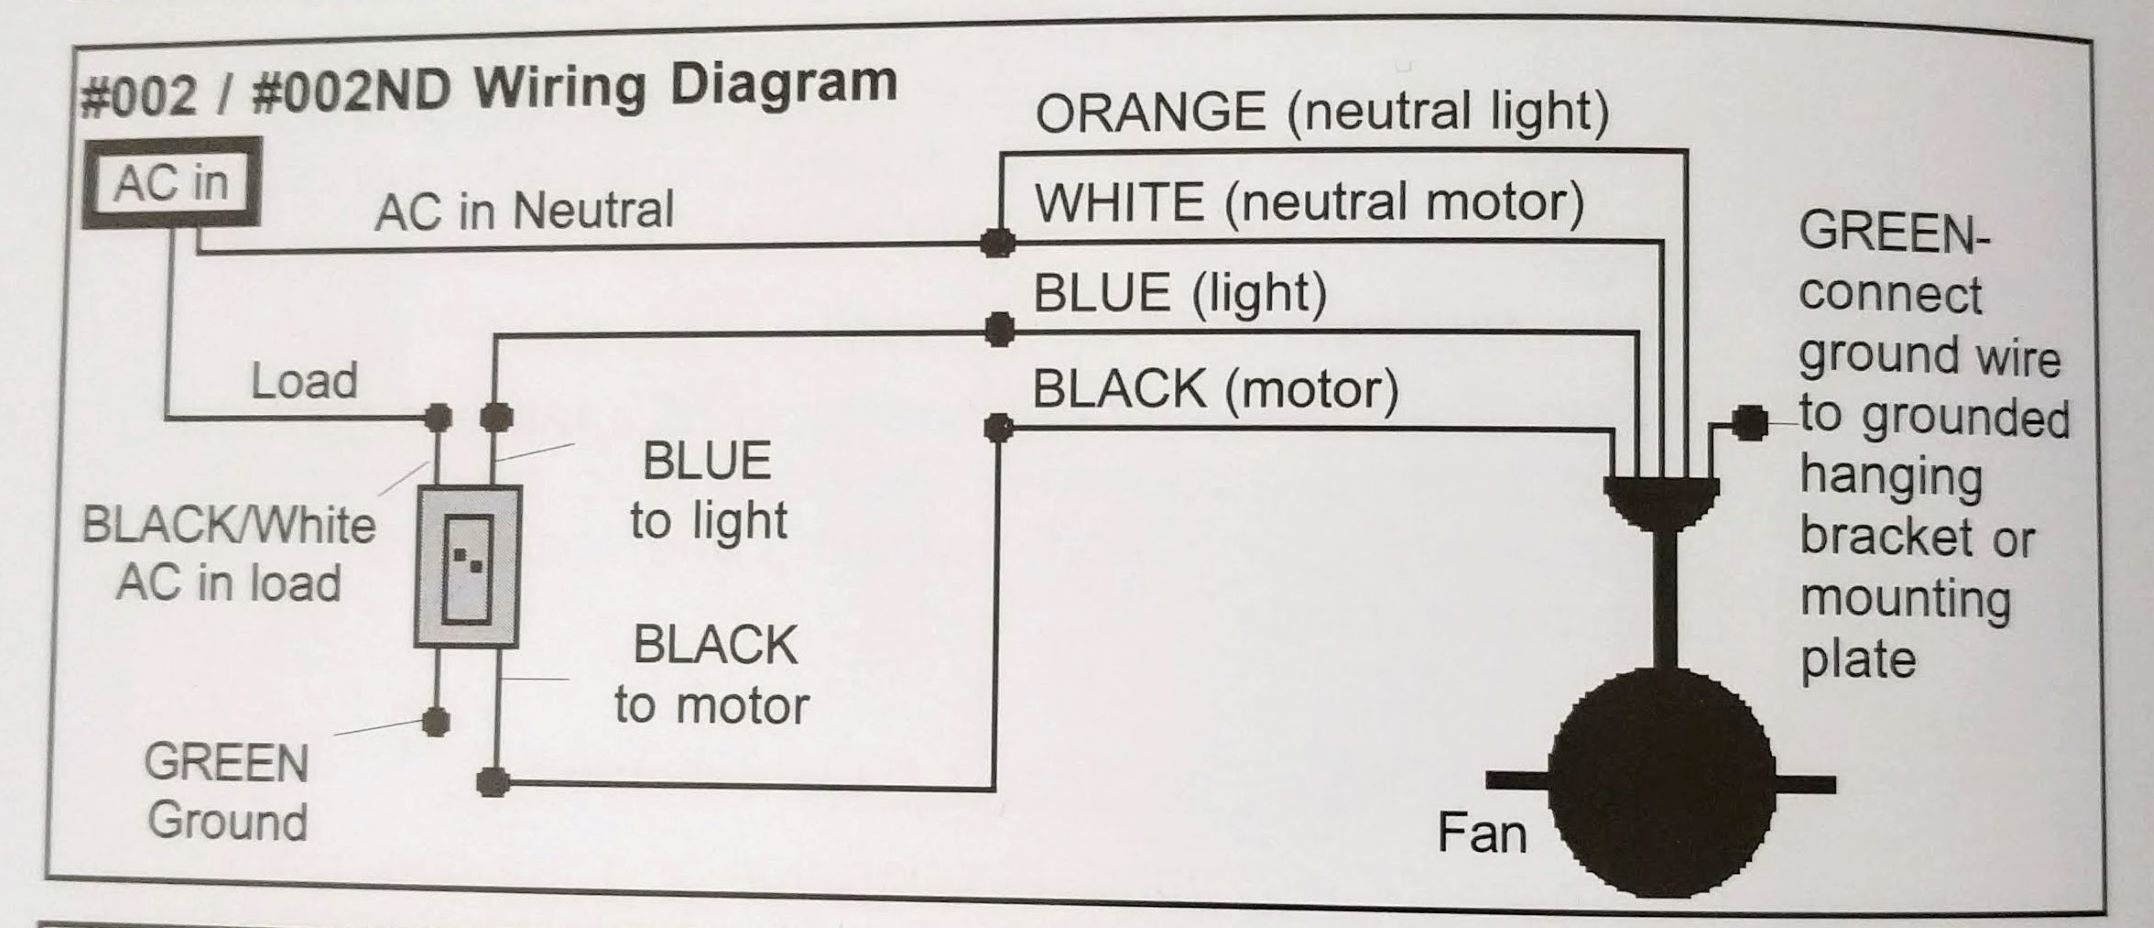 wiring diagram of a ceiling fan driving lights relay with black white red green in box this is the directions i received